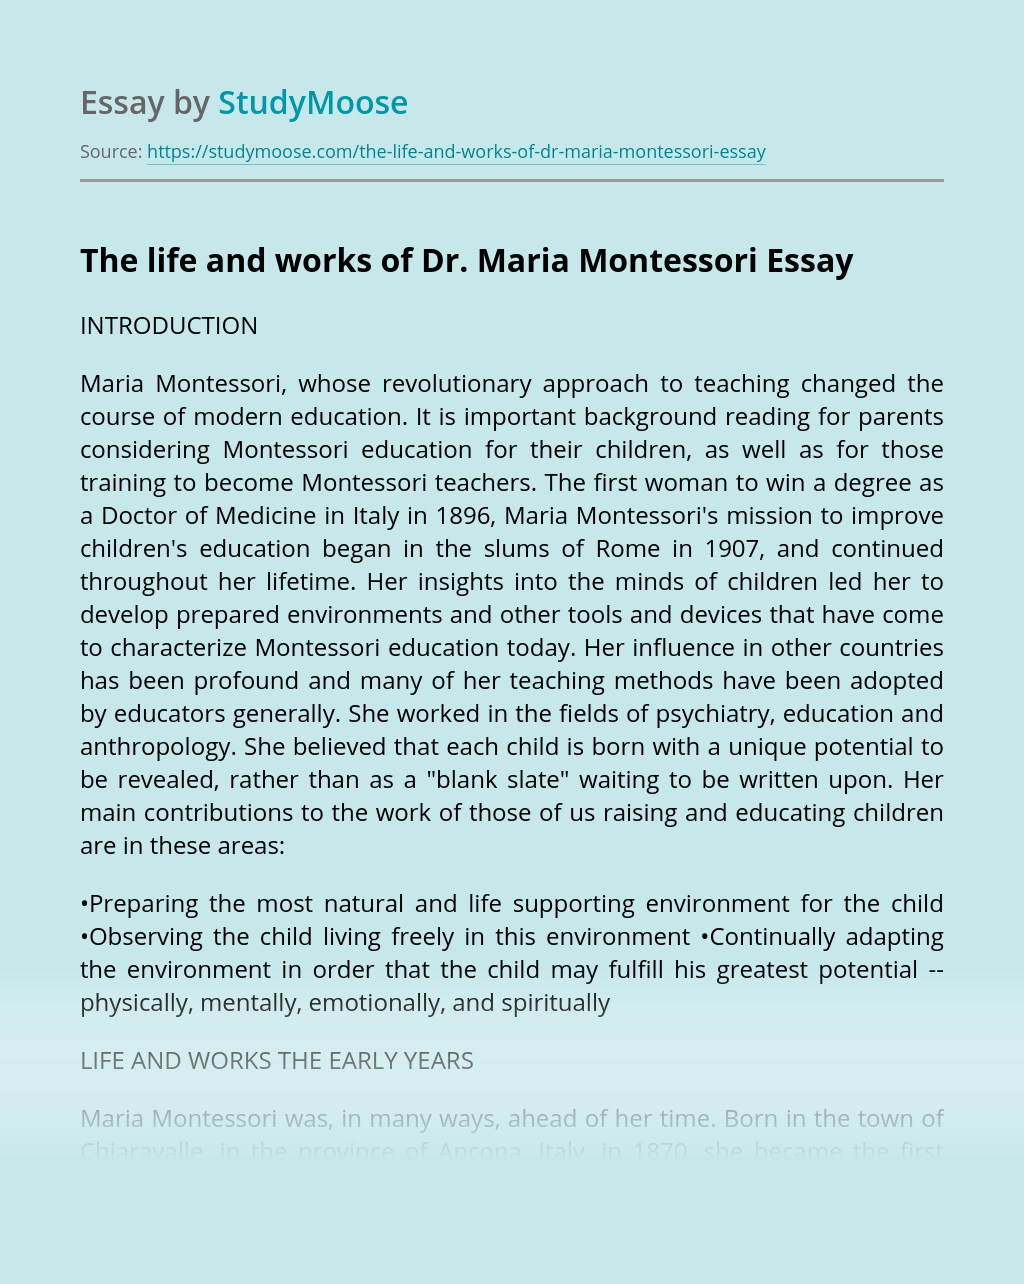 The life and works of Dr. Maria Montessori